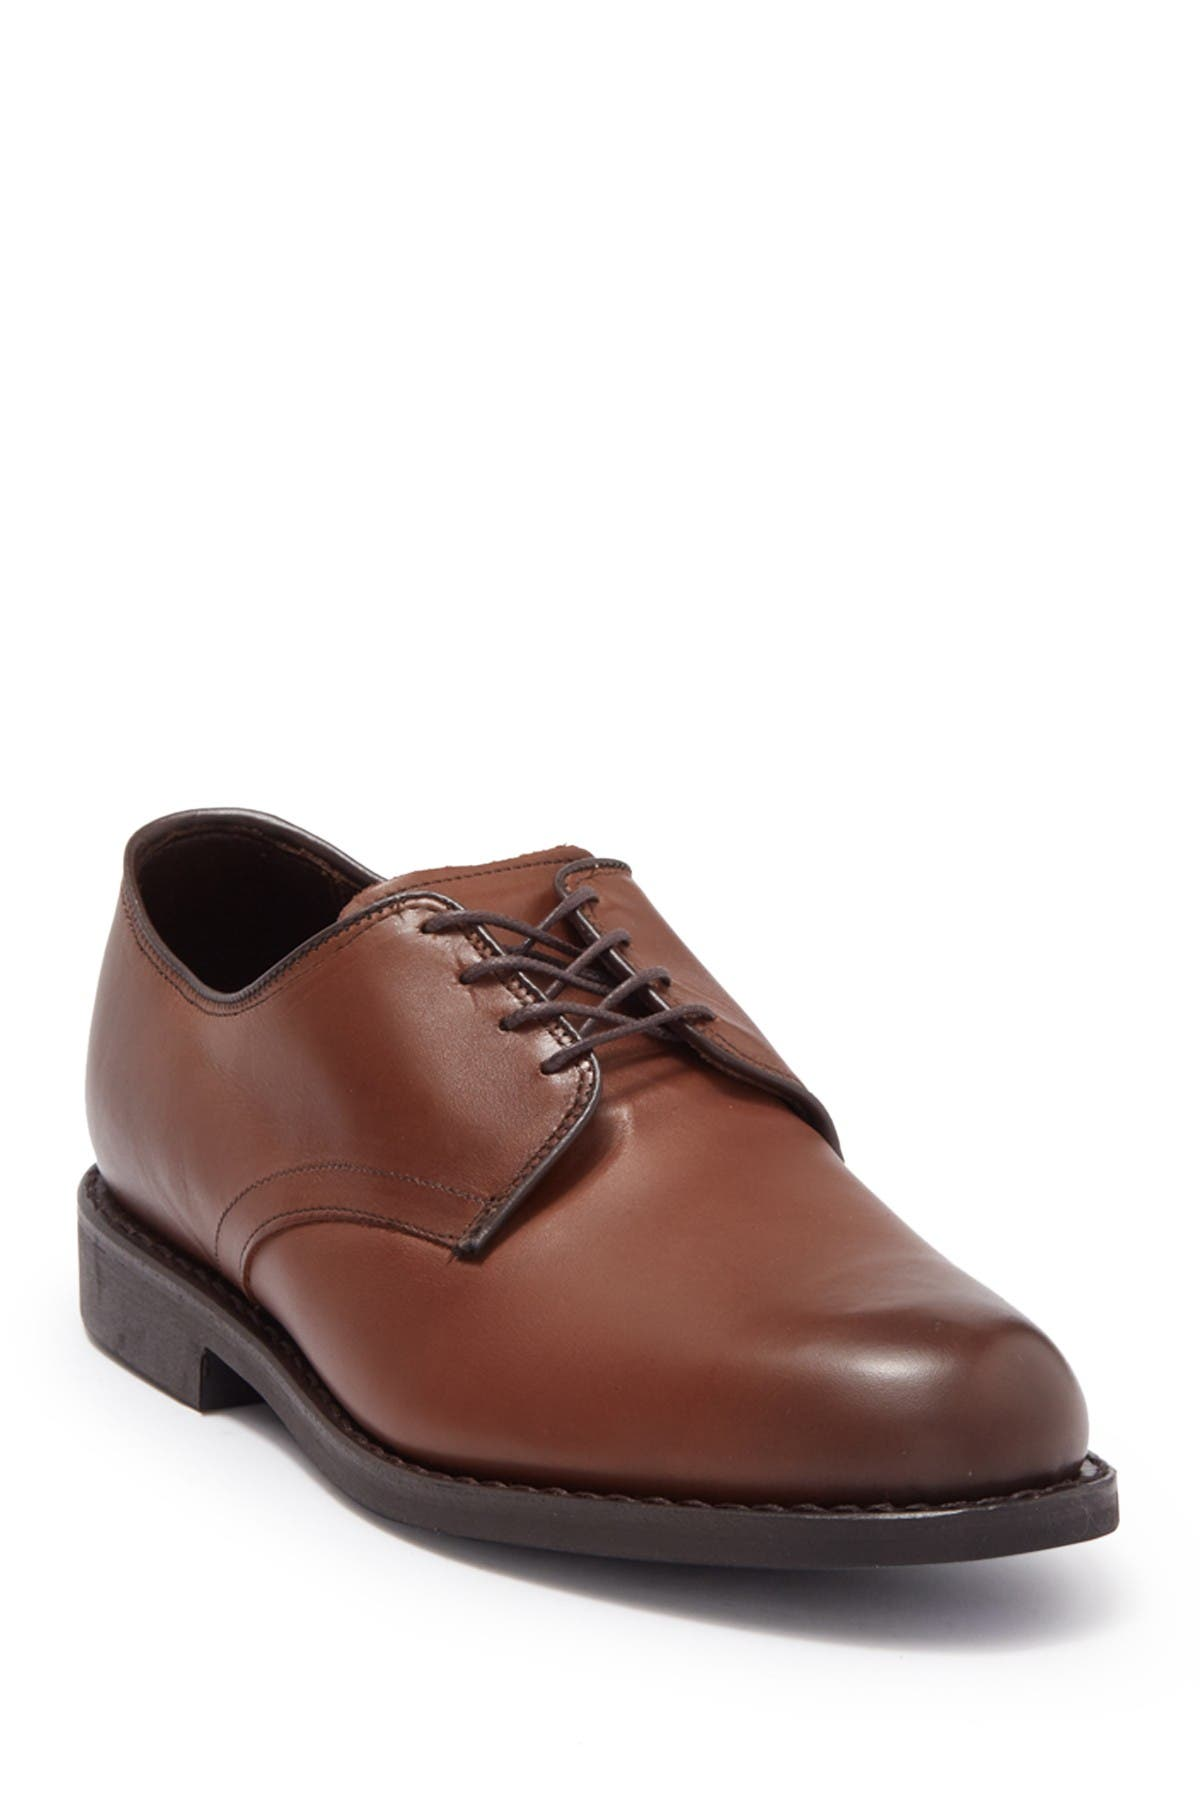 Image of Allen Edmonds Chicago Leather Derby - Wide Width Available